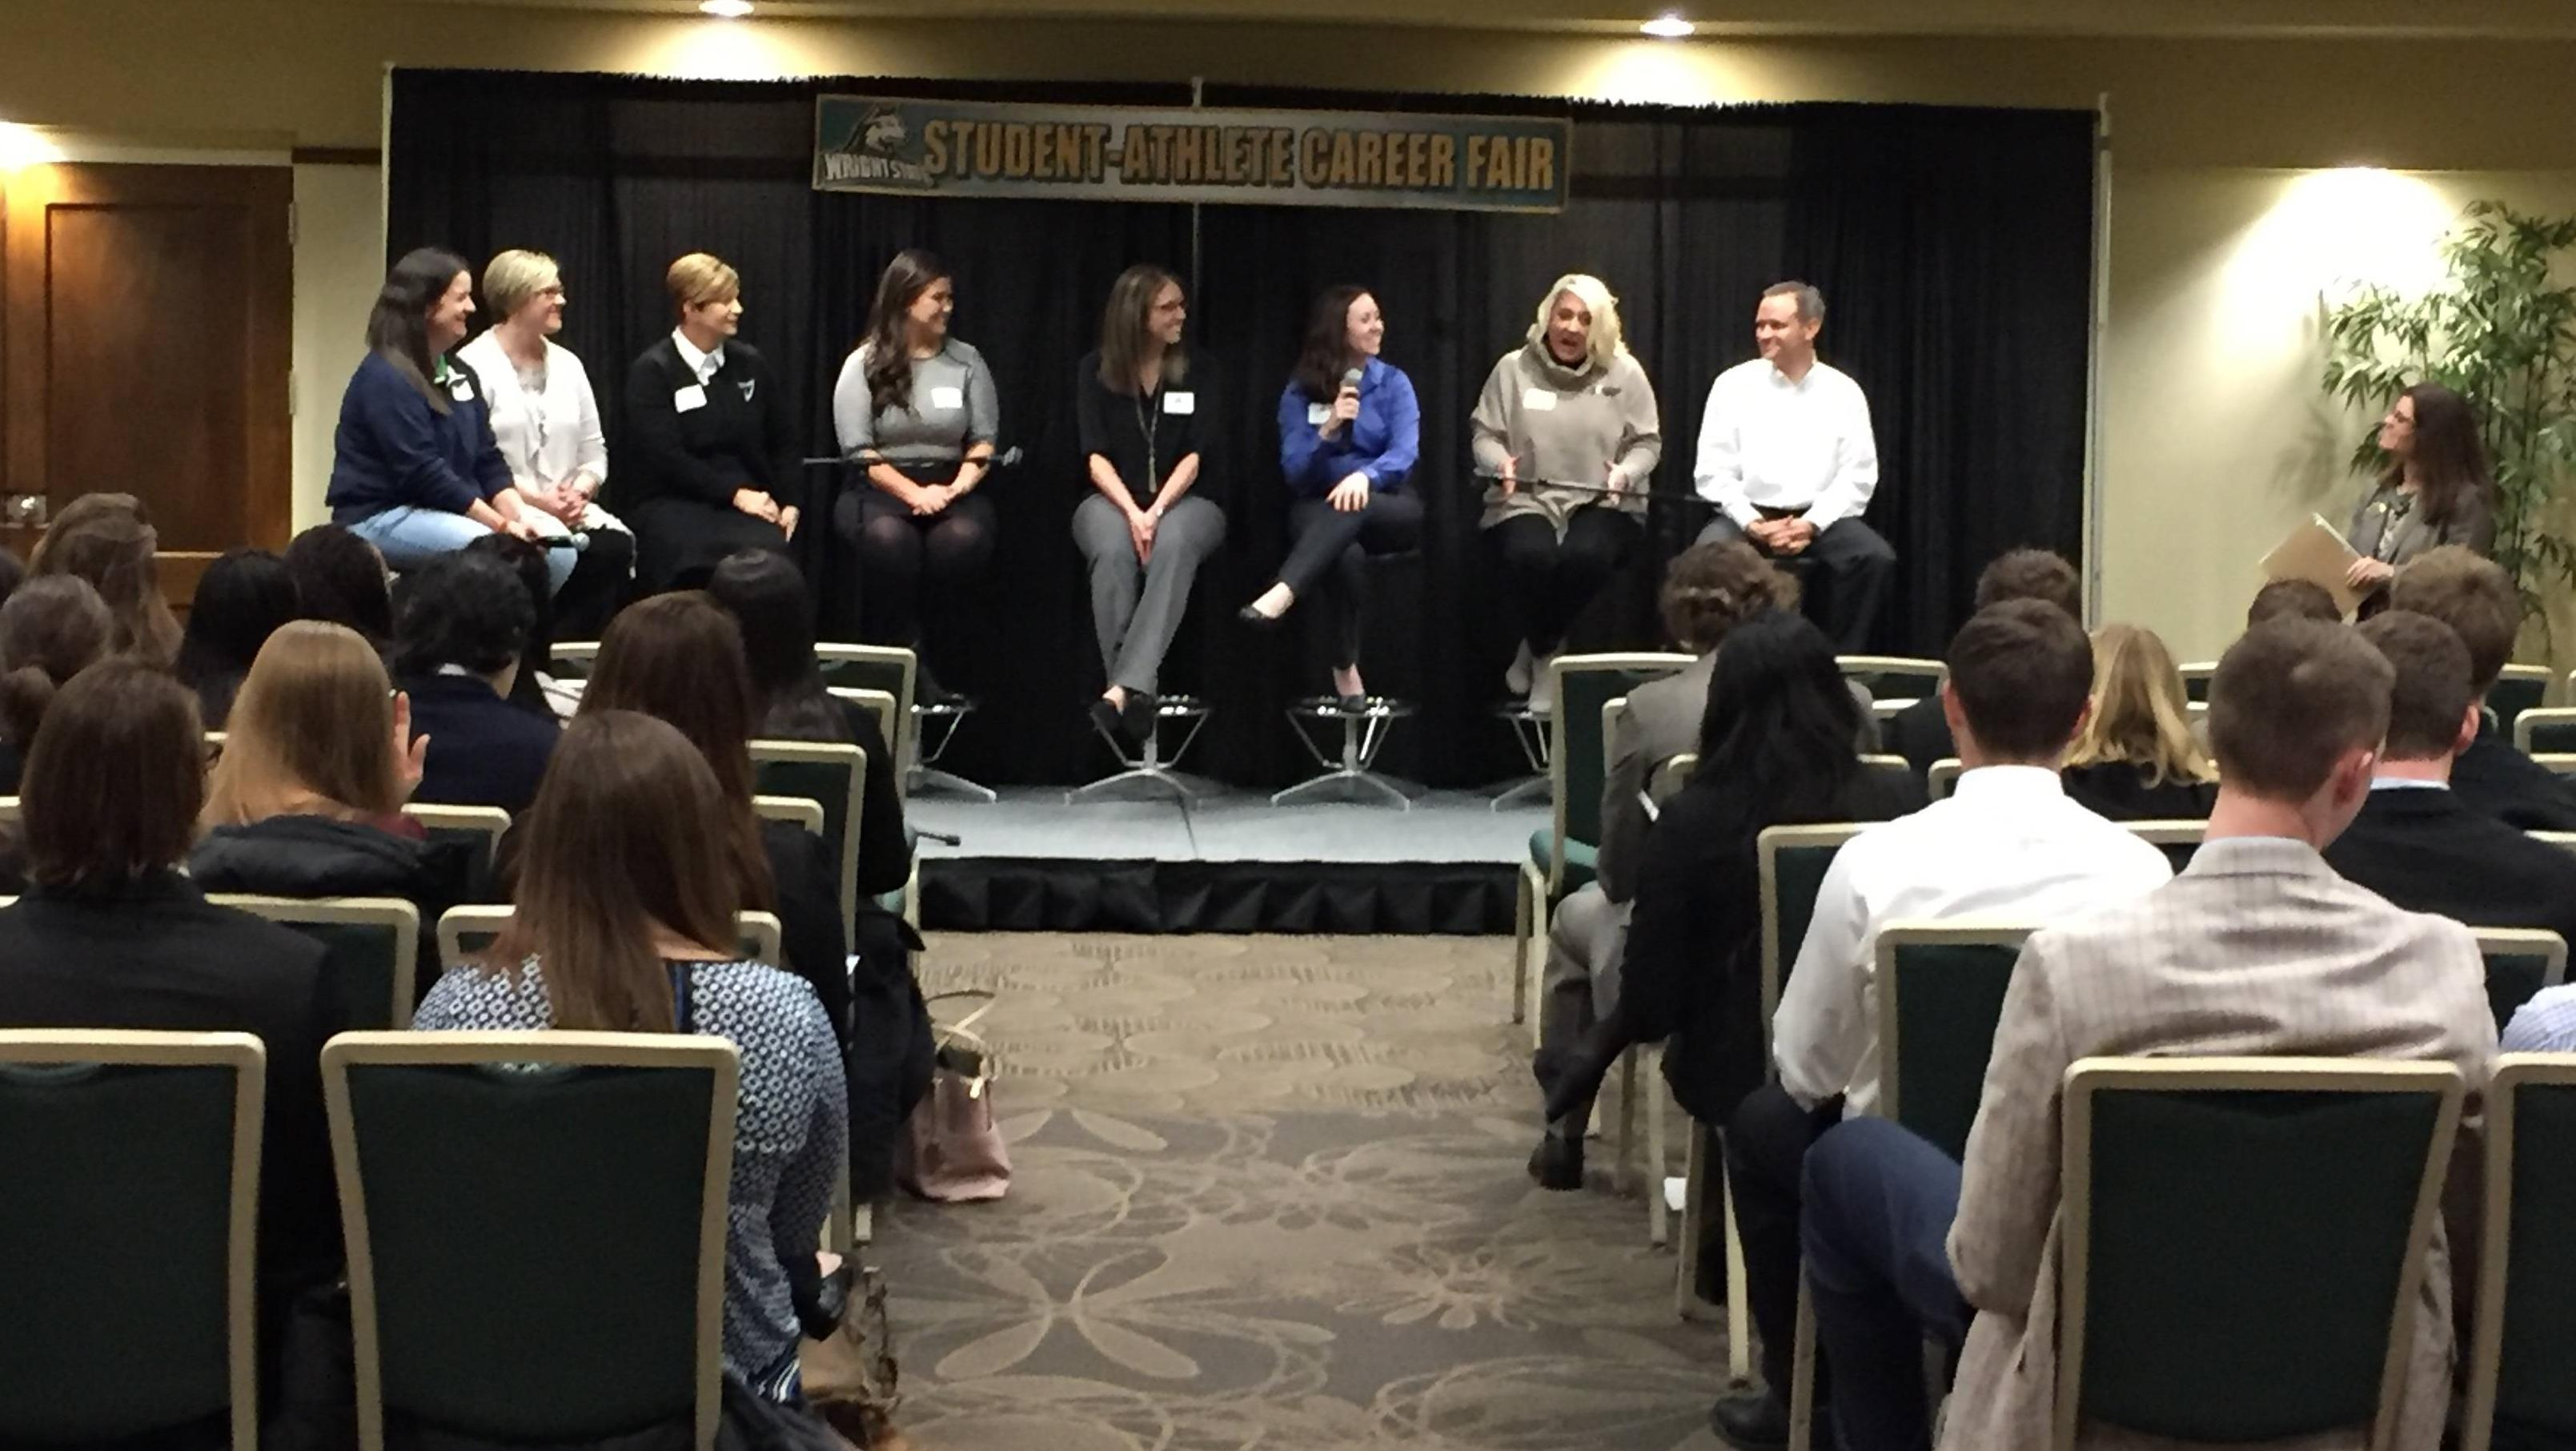 Wsu Athletics Hosts Career Fair Wright State University Athletics